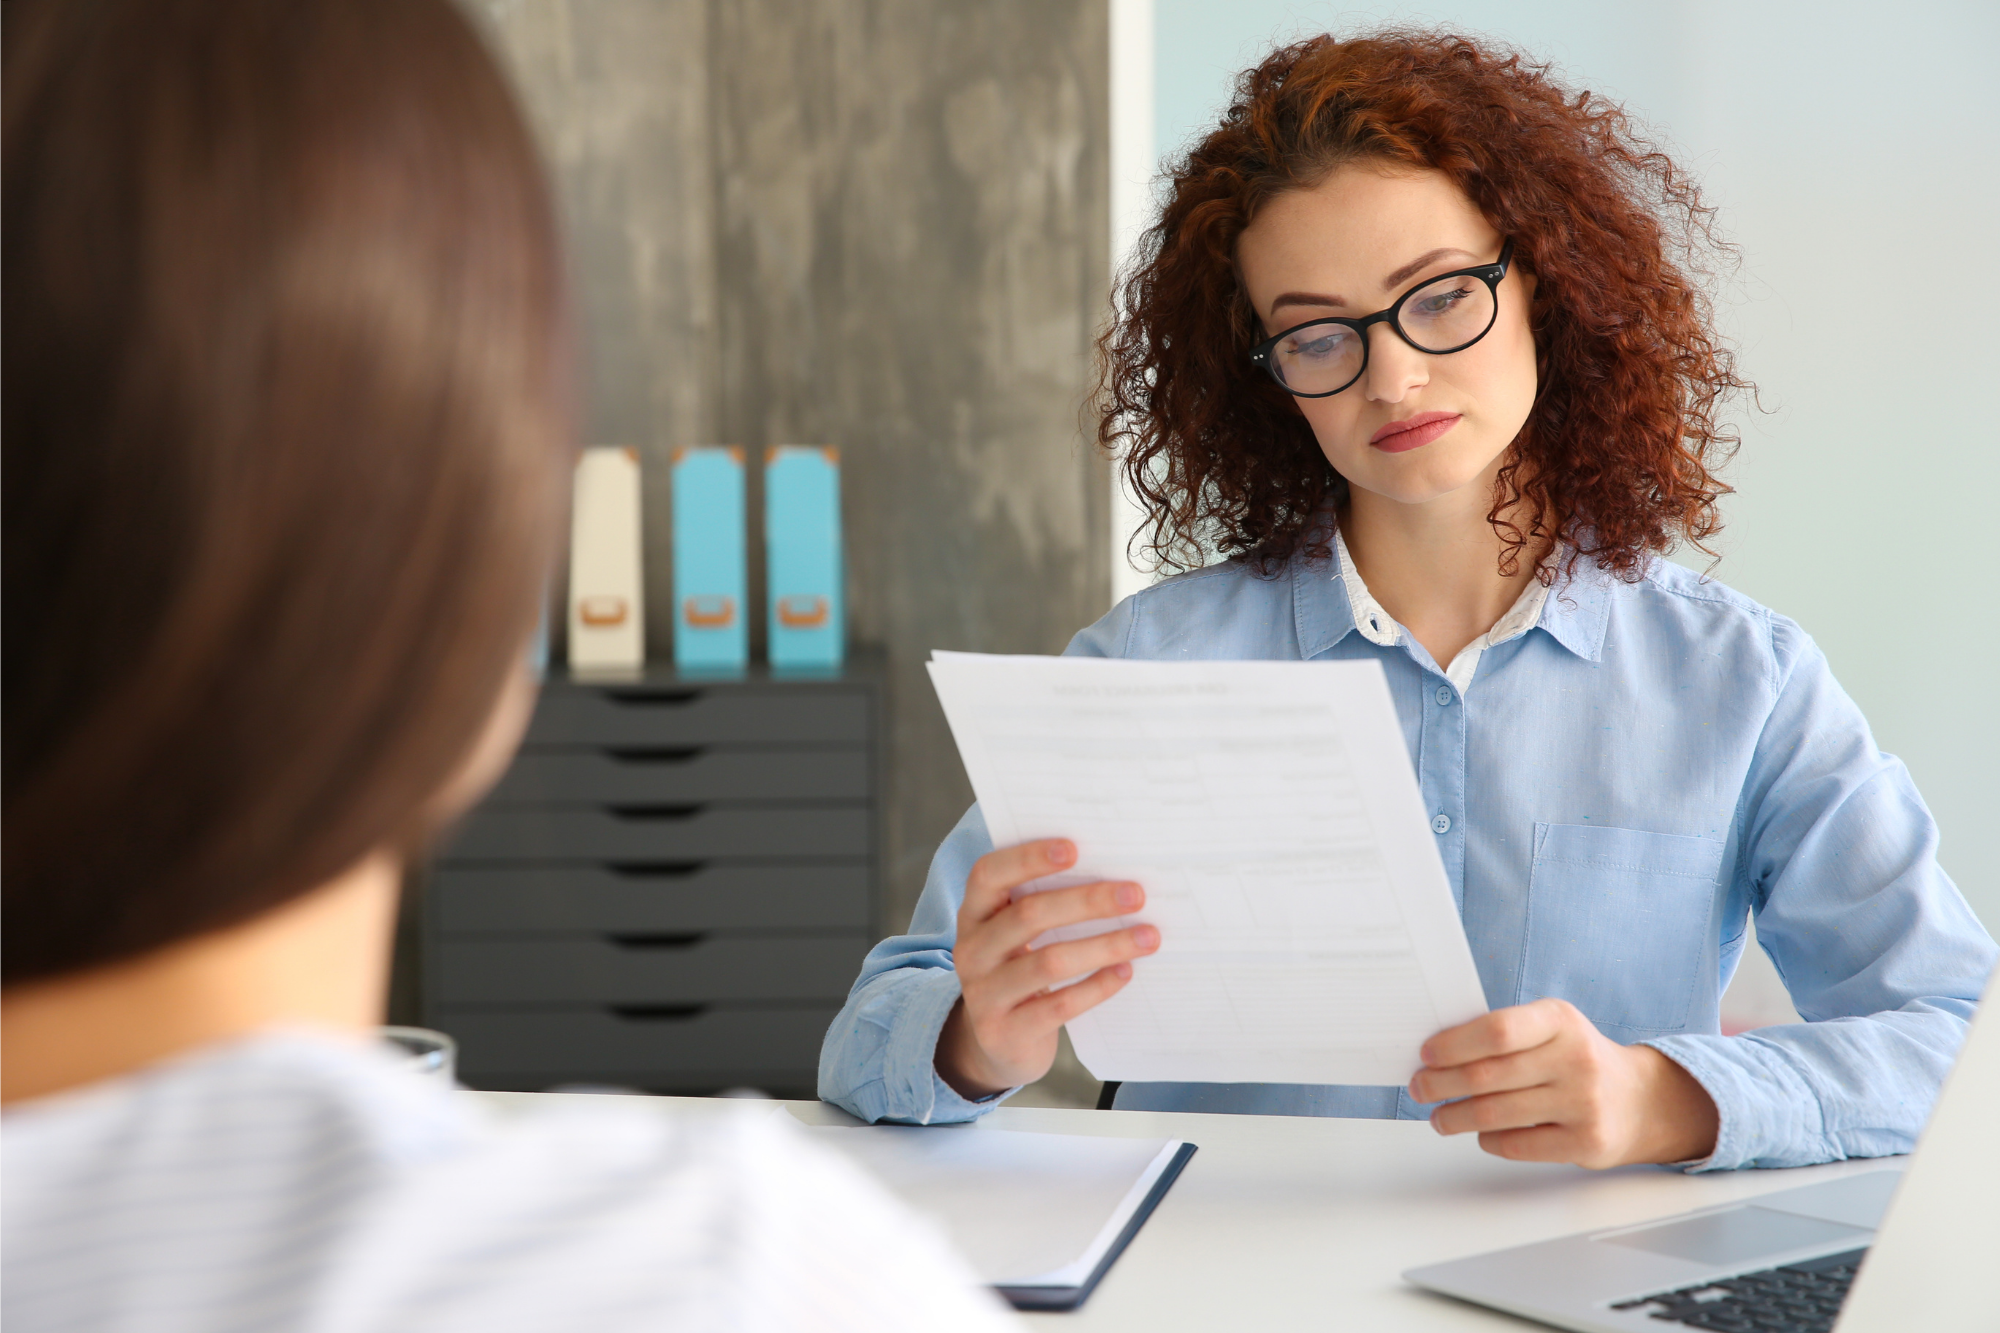 Photo of two women conducting a job interview. Alison Shamir is an Imposter Syndrome coach who can help you to conquer Imposter thoughts and nail your next salary negotiation.